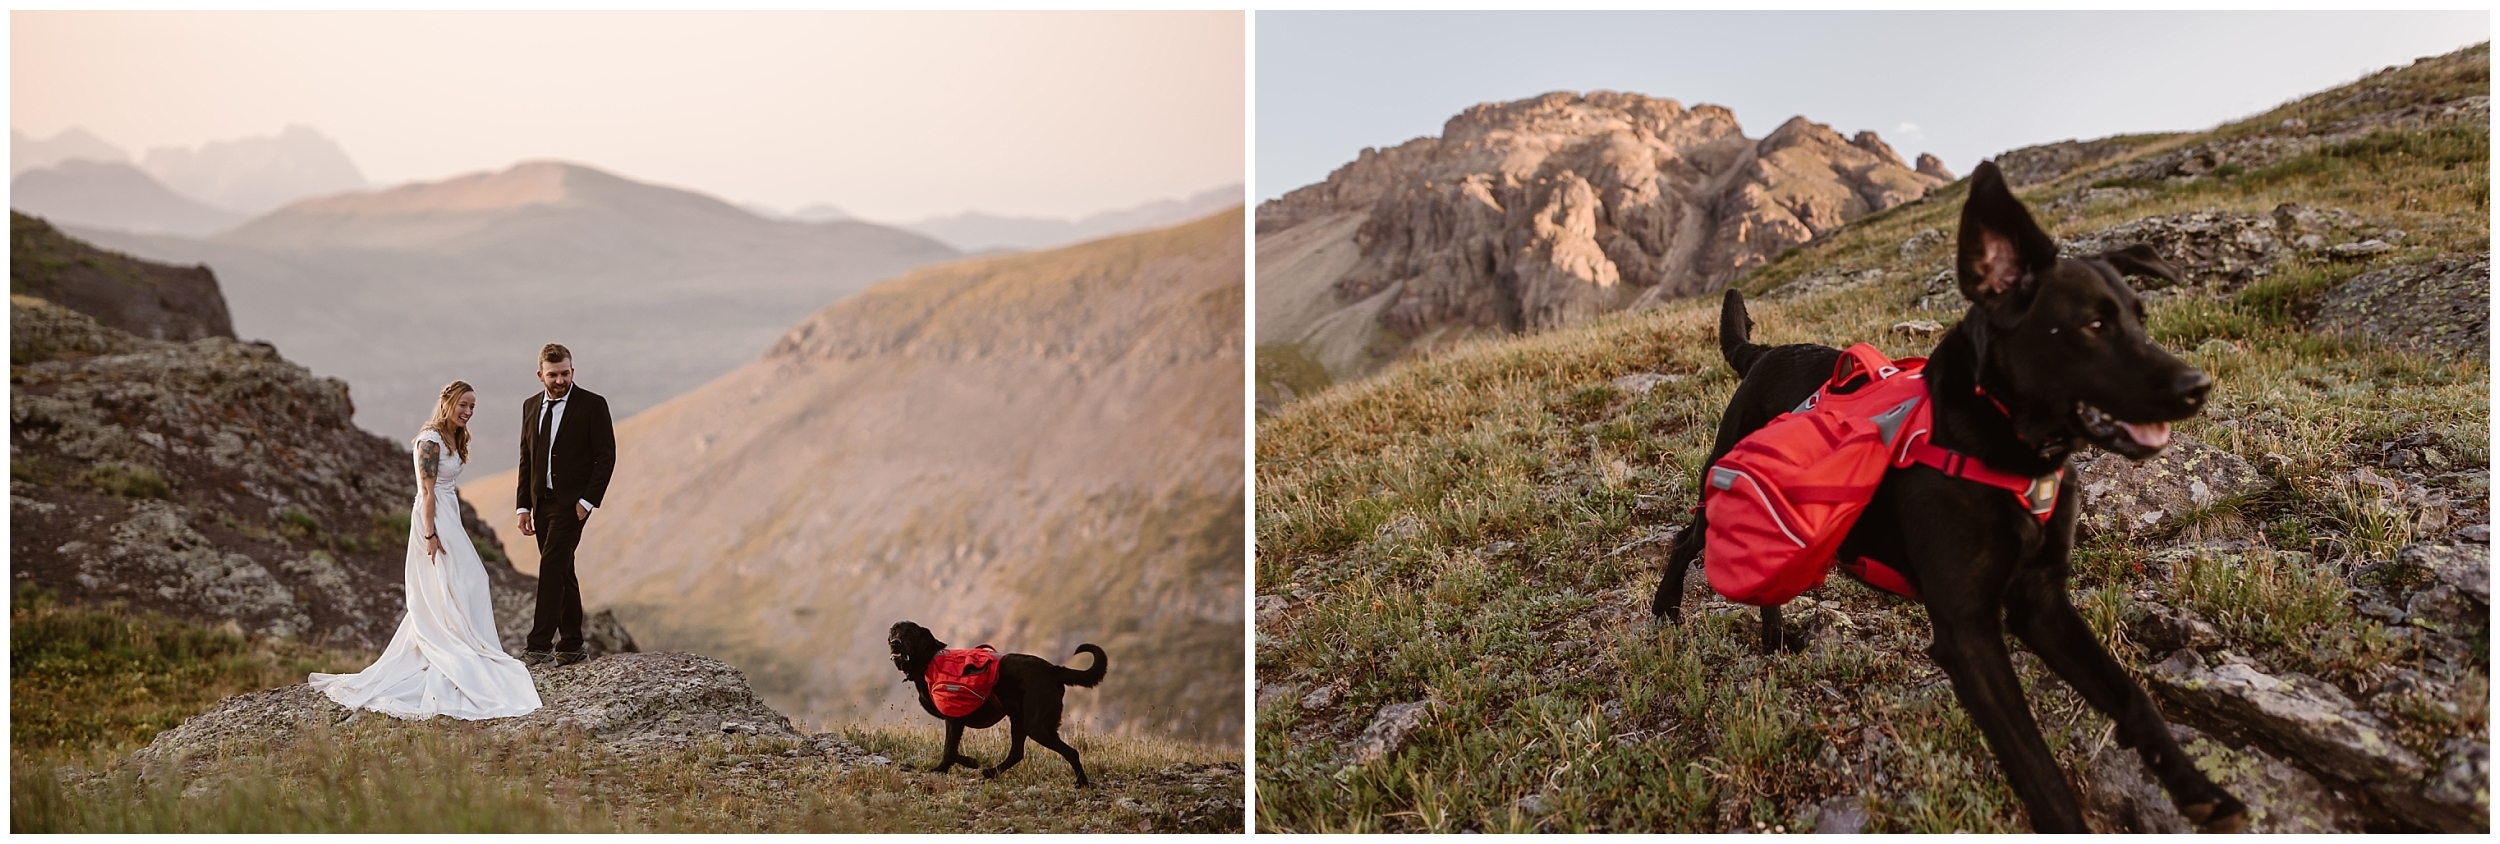 Brecka and Nick, the bride and groom, included their two dogs during their elopement. These side-by-side elopement photos, captured by Adventure Instead, show off some unique eloping ideas they wanted to include in their destination wedding.